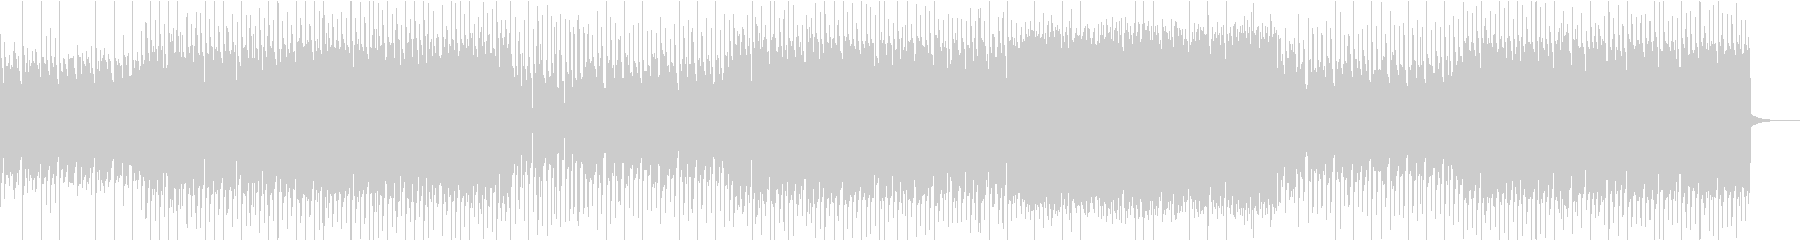 Corporate VP / CM exciting and refreshing's unreproduced waveform